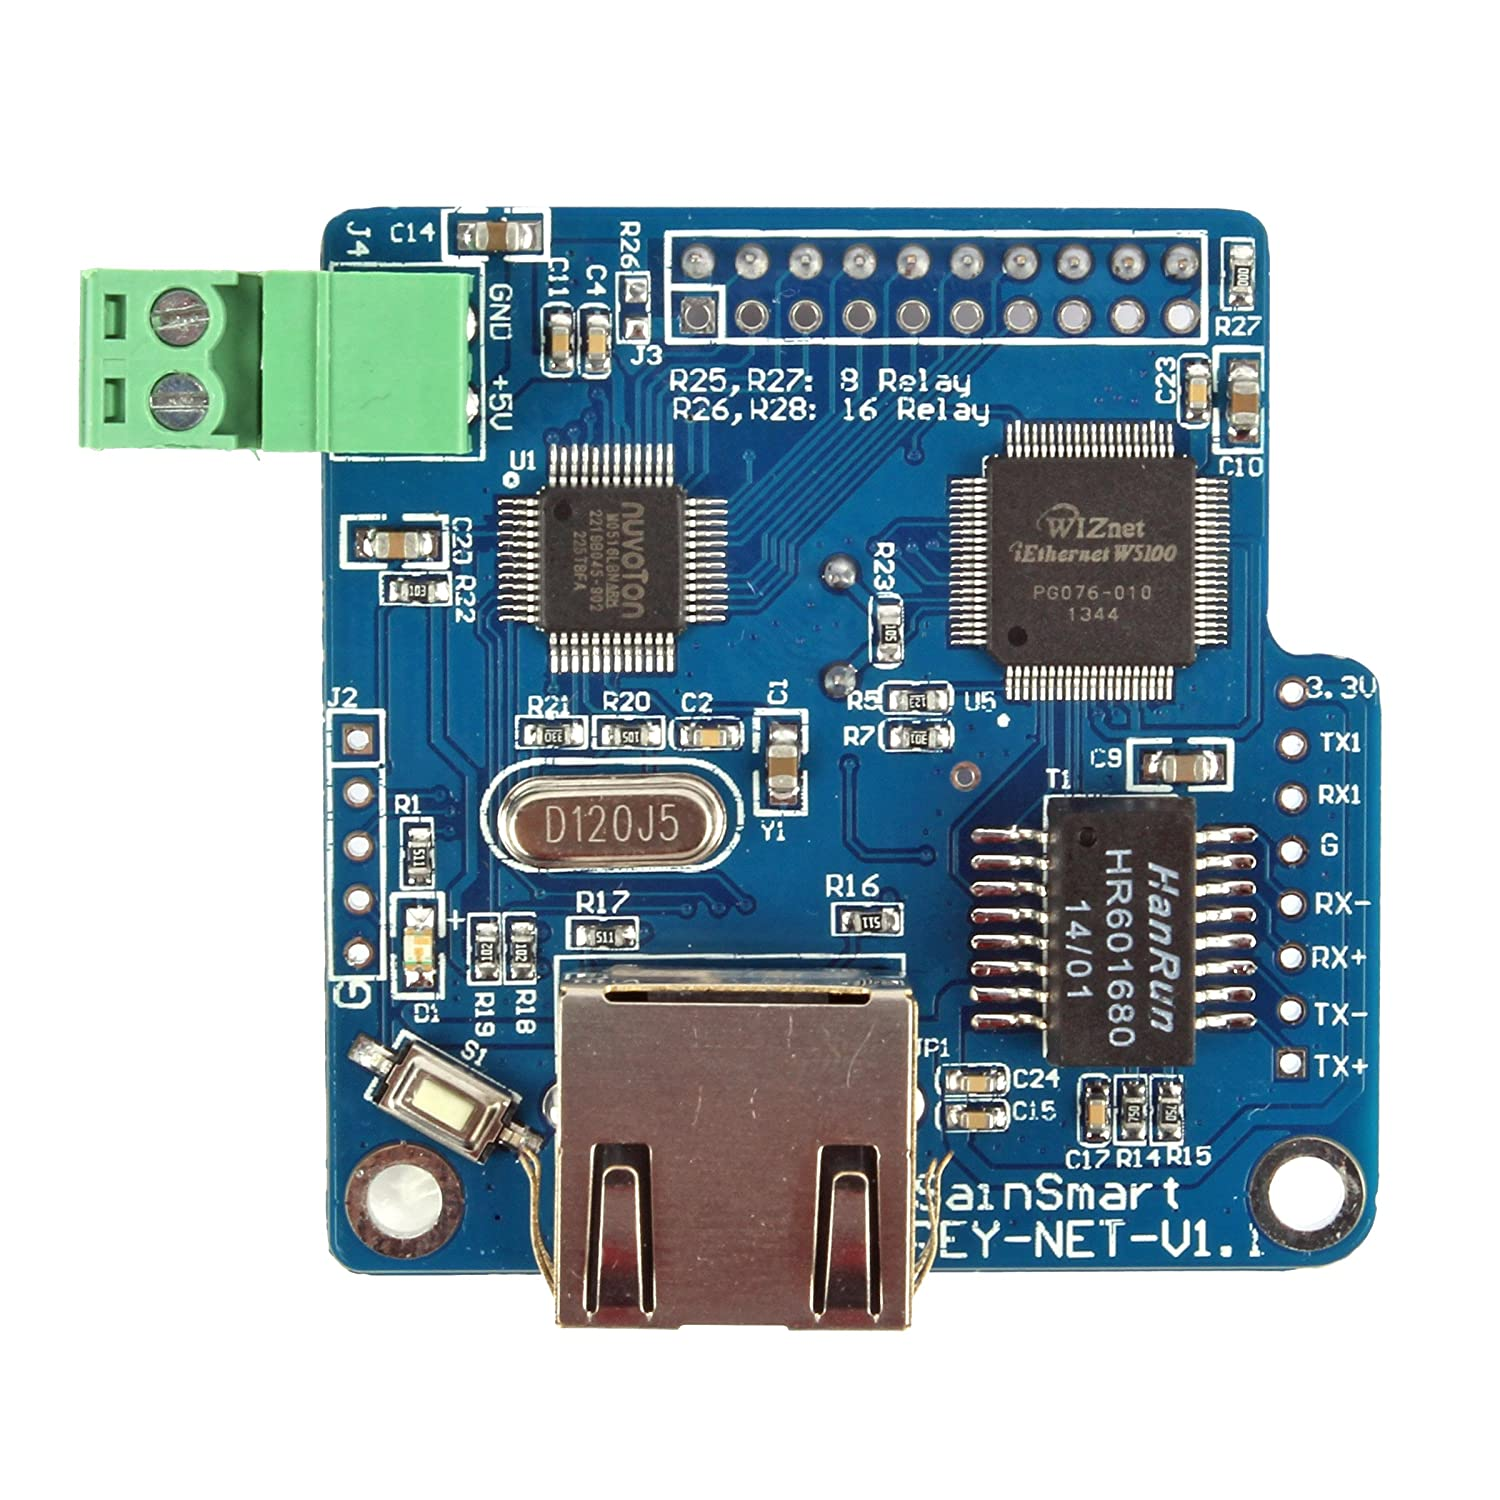 O Remote Control Controller  Module, Rj45 Interface,patible With Arduino, Android Ios Device Control